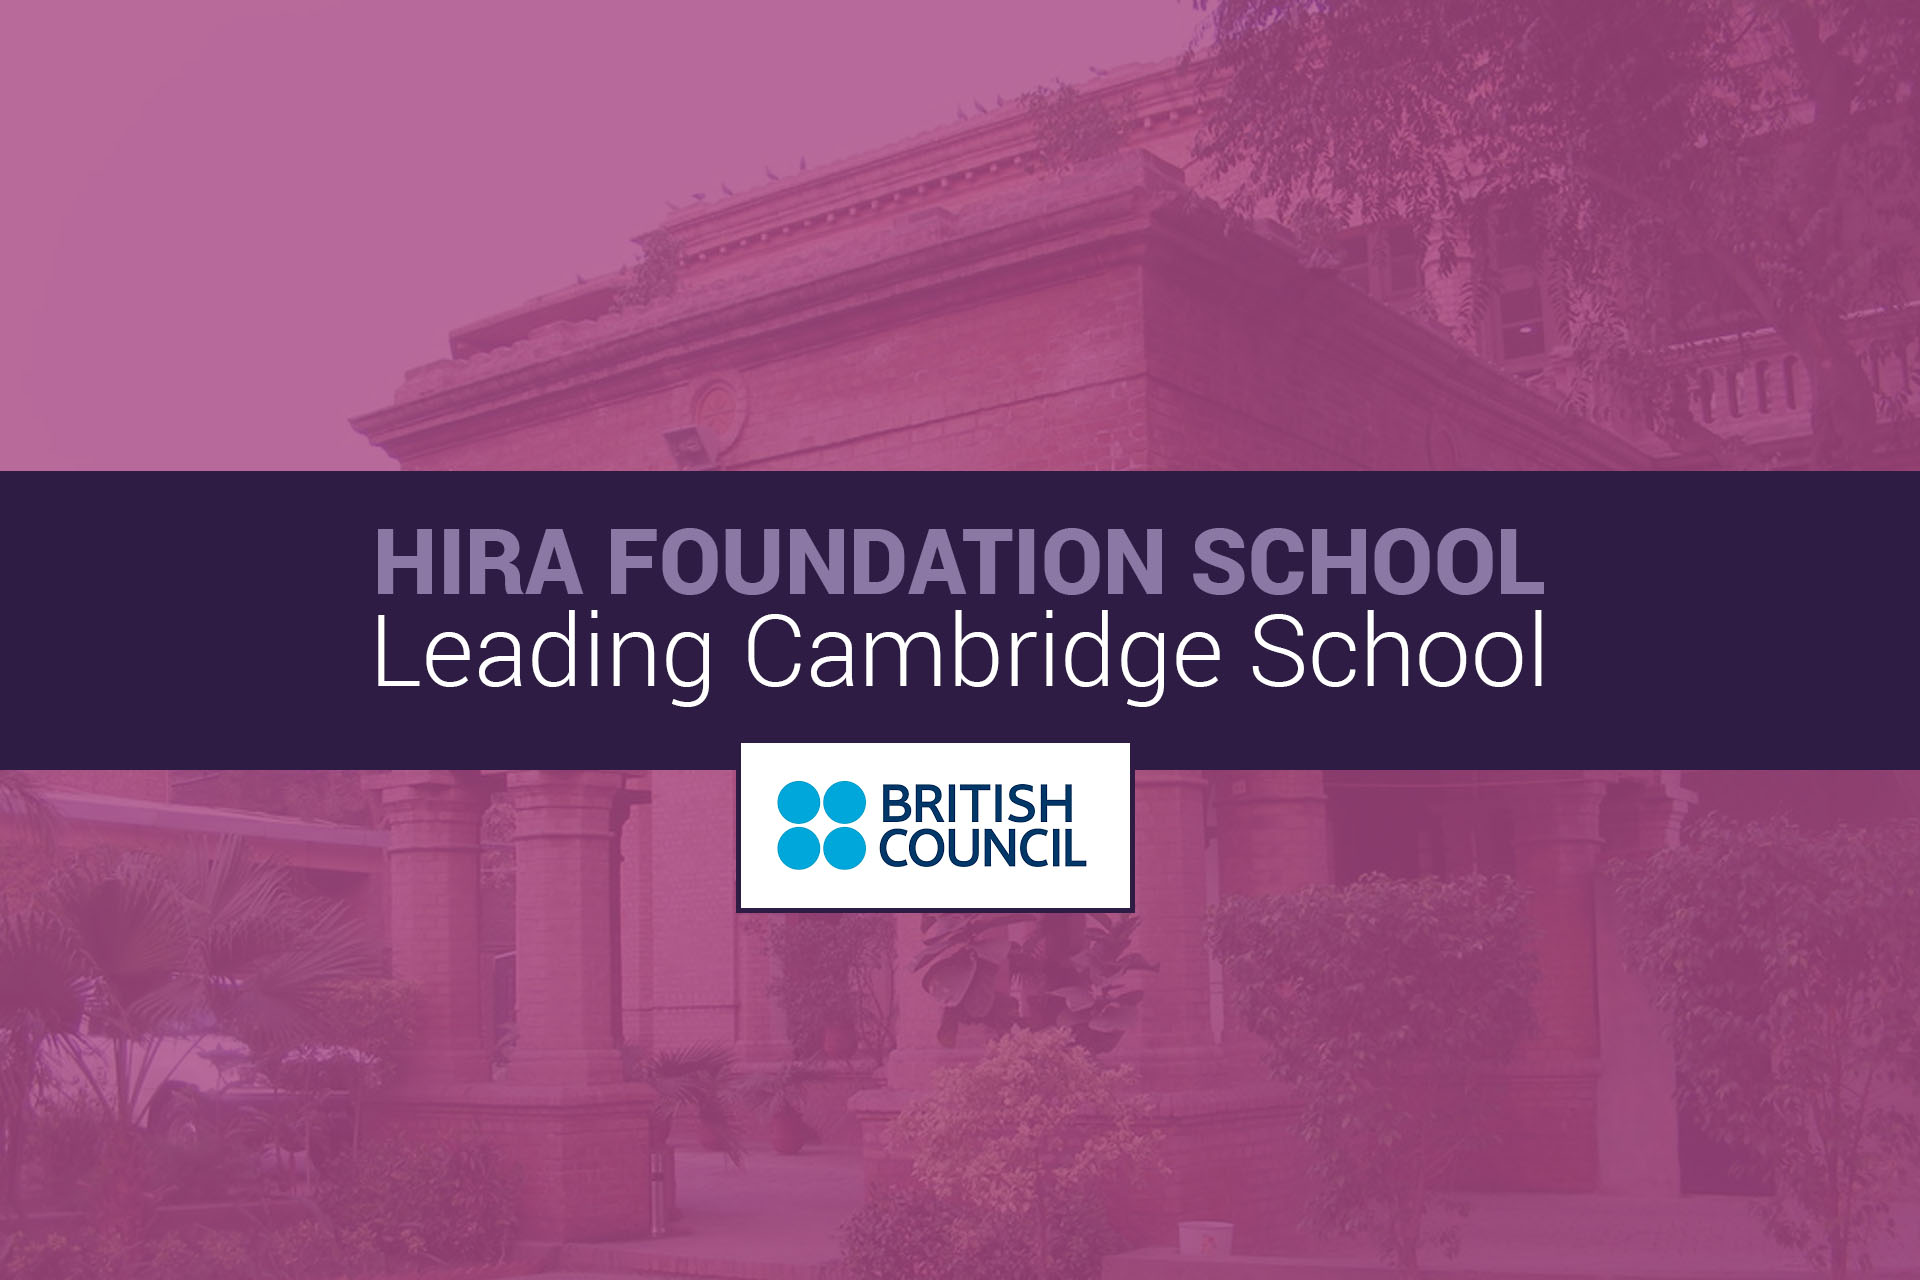 LEADING CAMBRIDGE SCHOOL